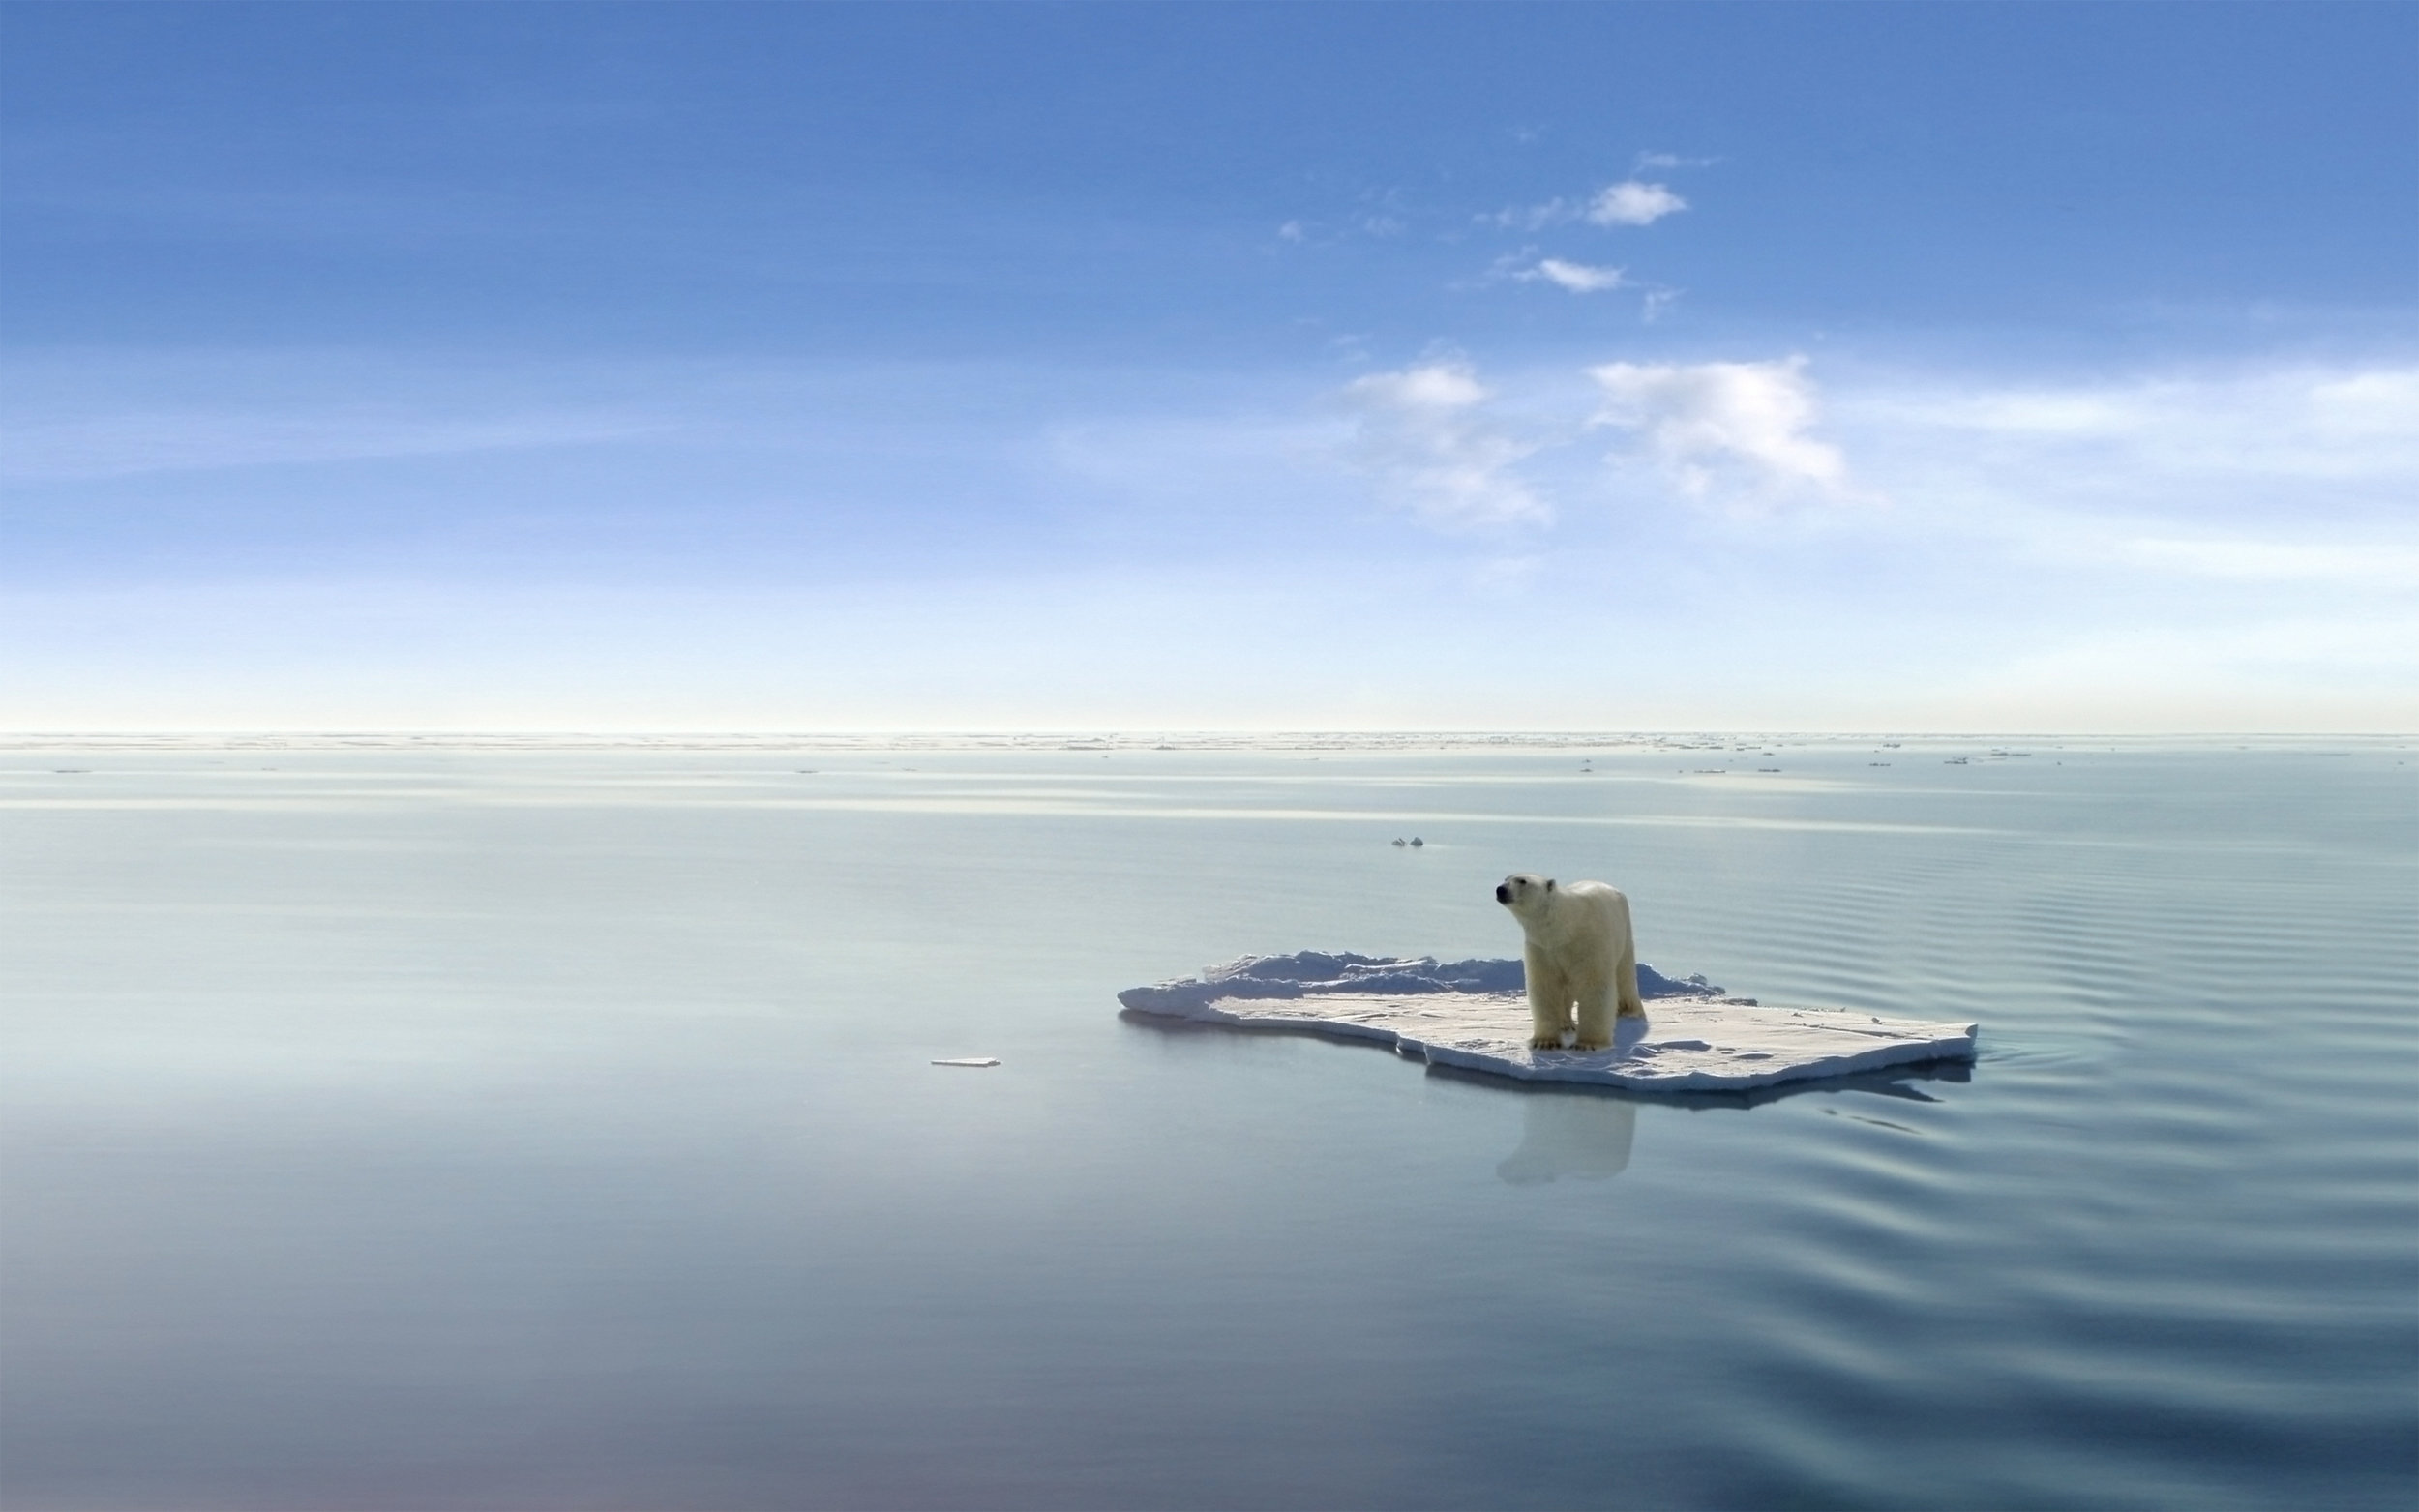 bigstock-Polar-bear-on-an-ice-floe-15030044.jpg